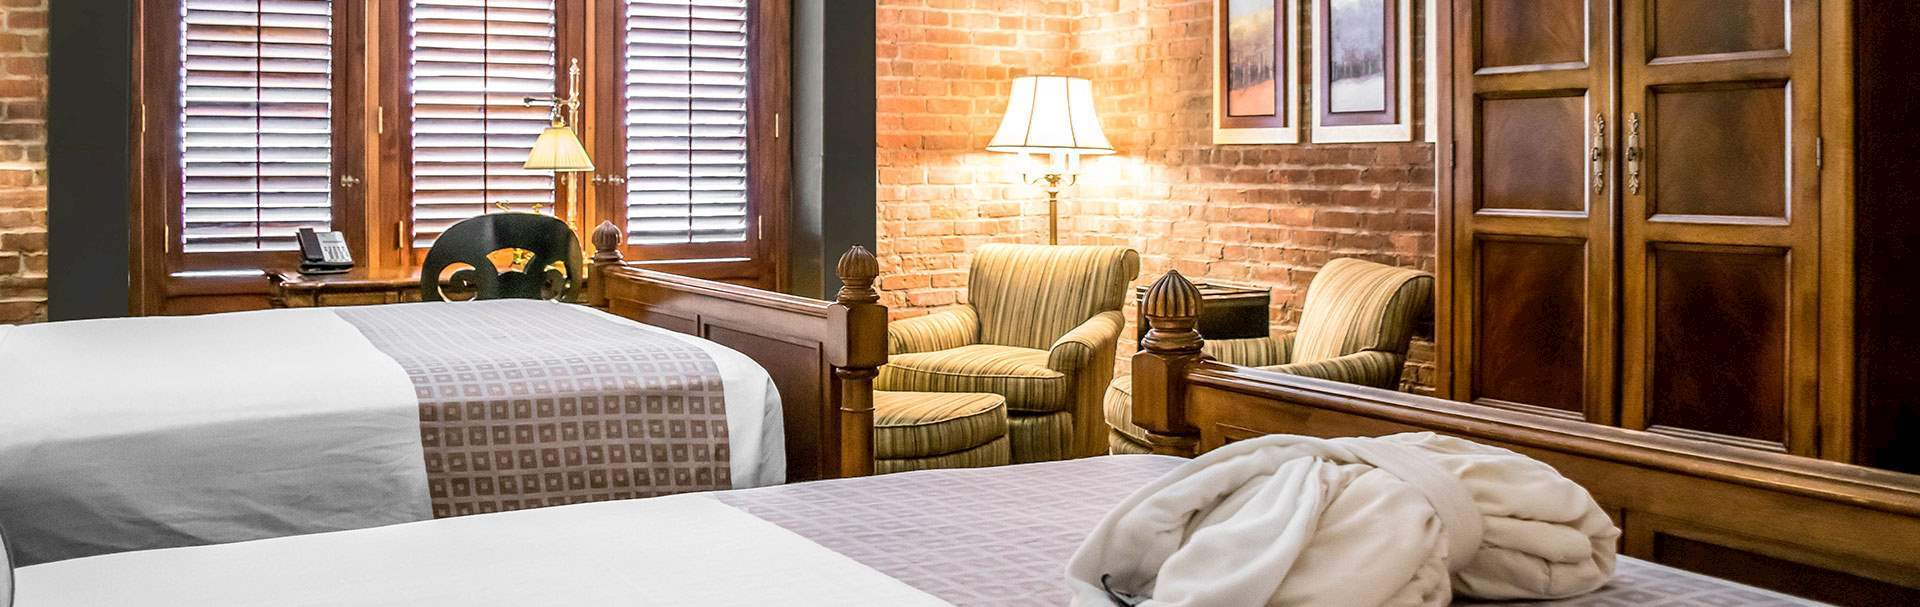 Rooms in Inn at Henderson's Wharf Baltimore, Maryland